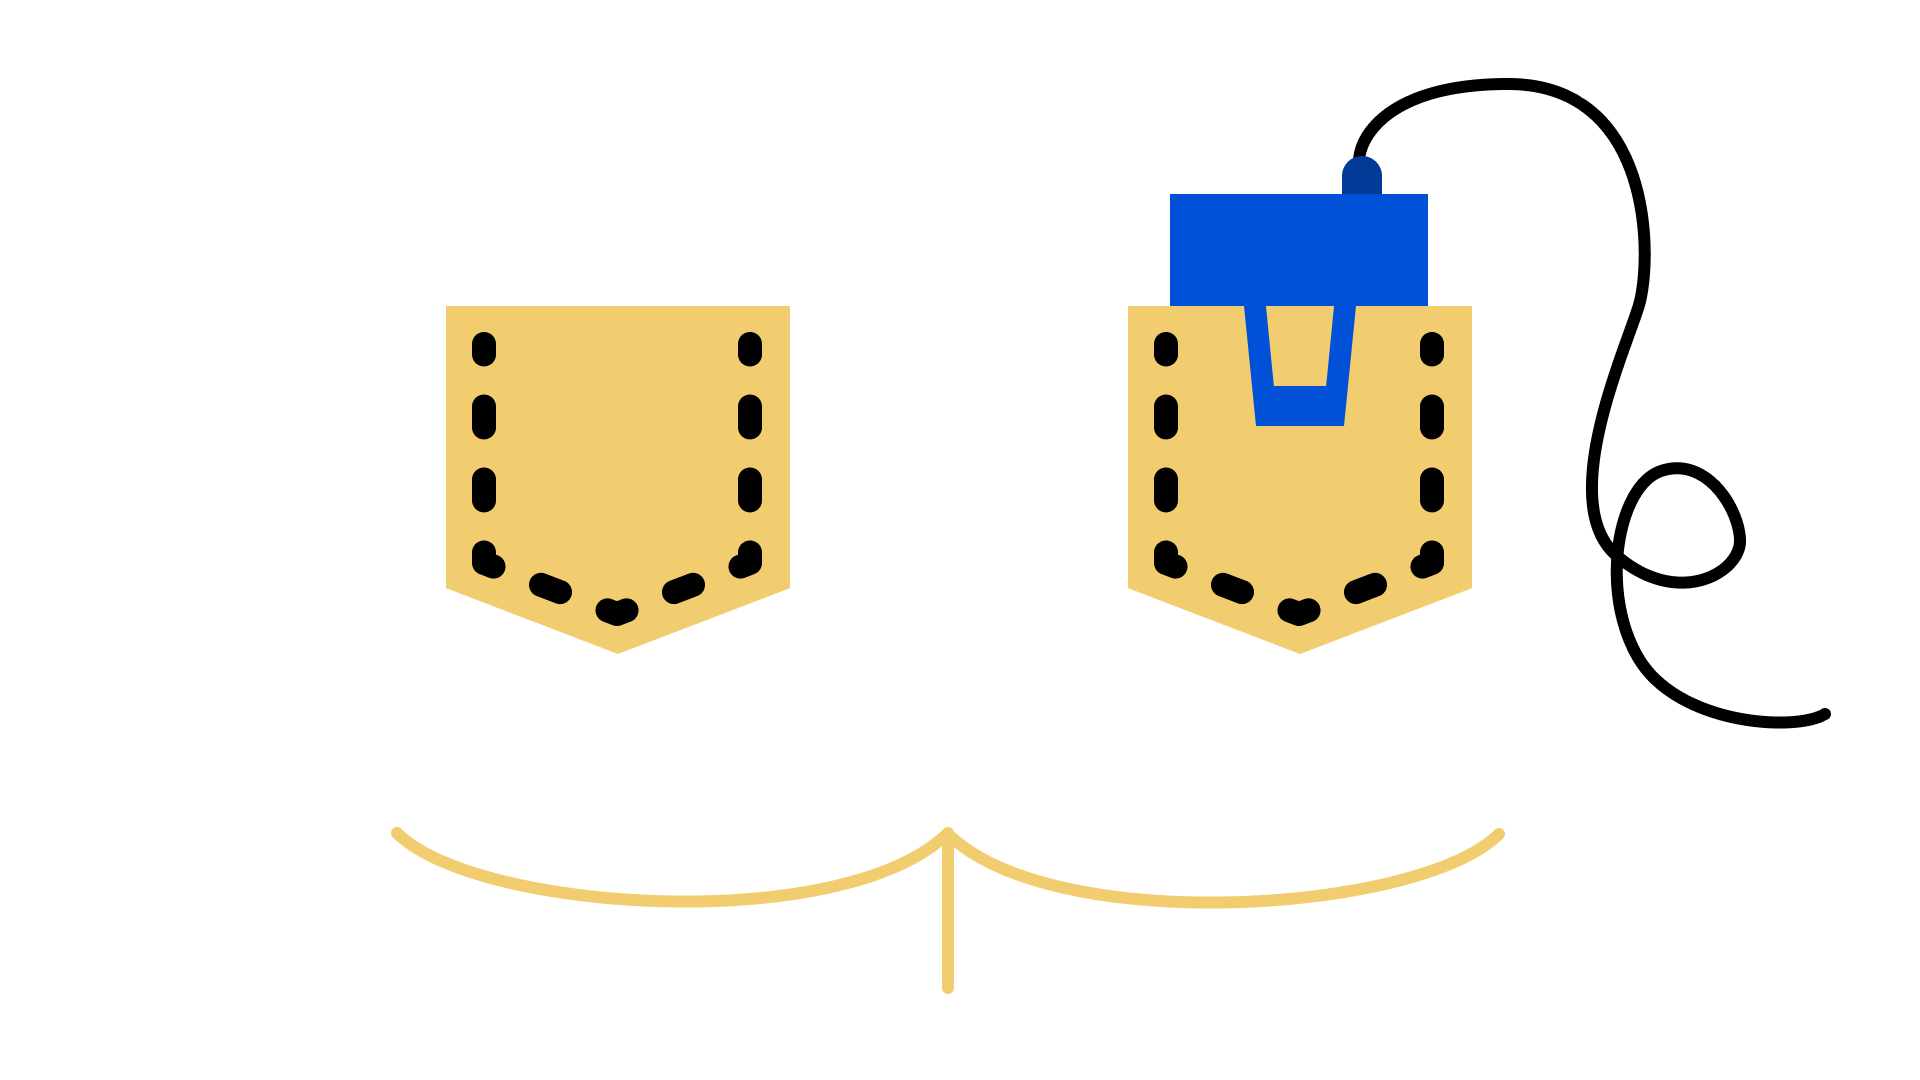 Illustration of butt with a microphone battery pack in the back pocket